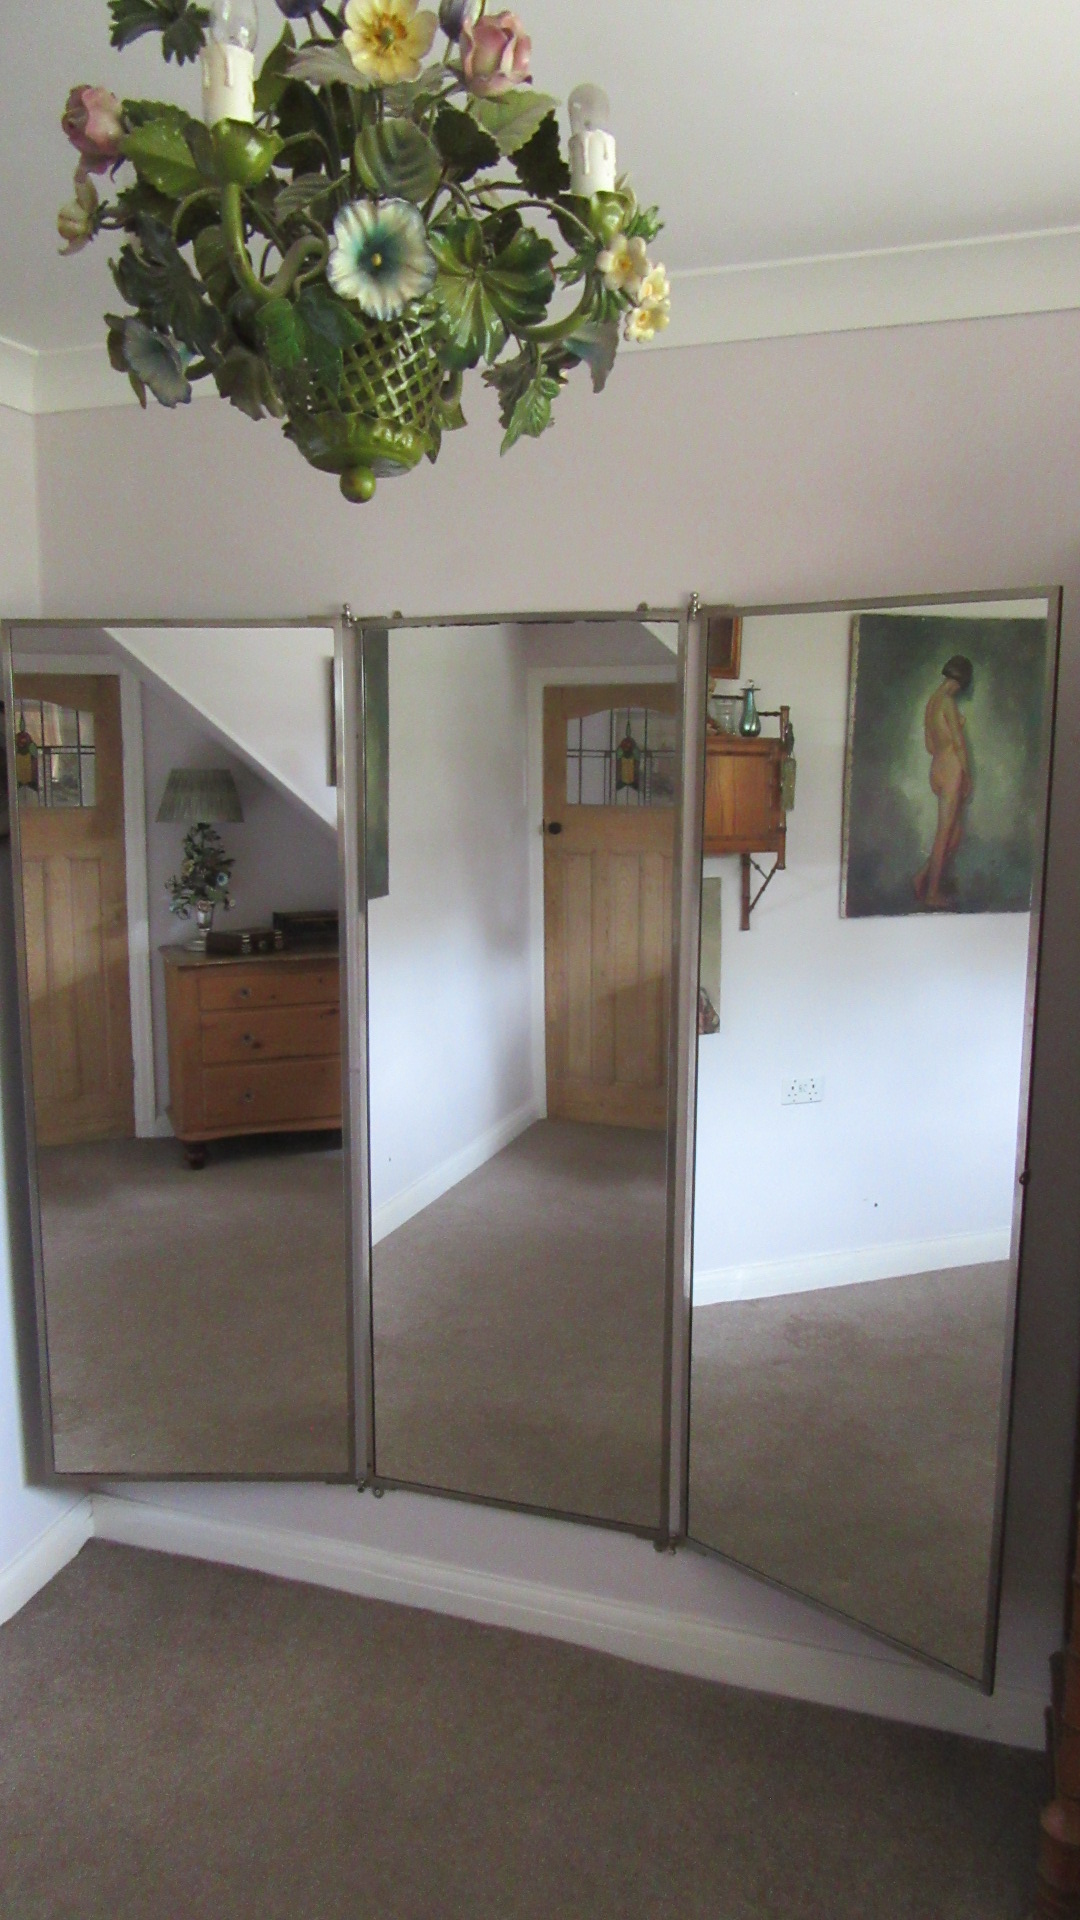 ANTIQUE BROT TRIPTYICH SILVER PLATED WALL MIRROR